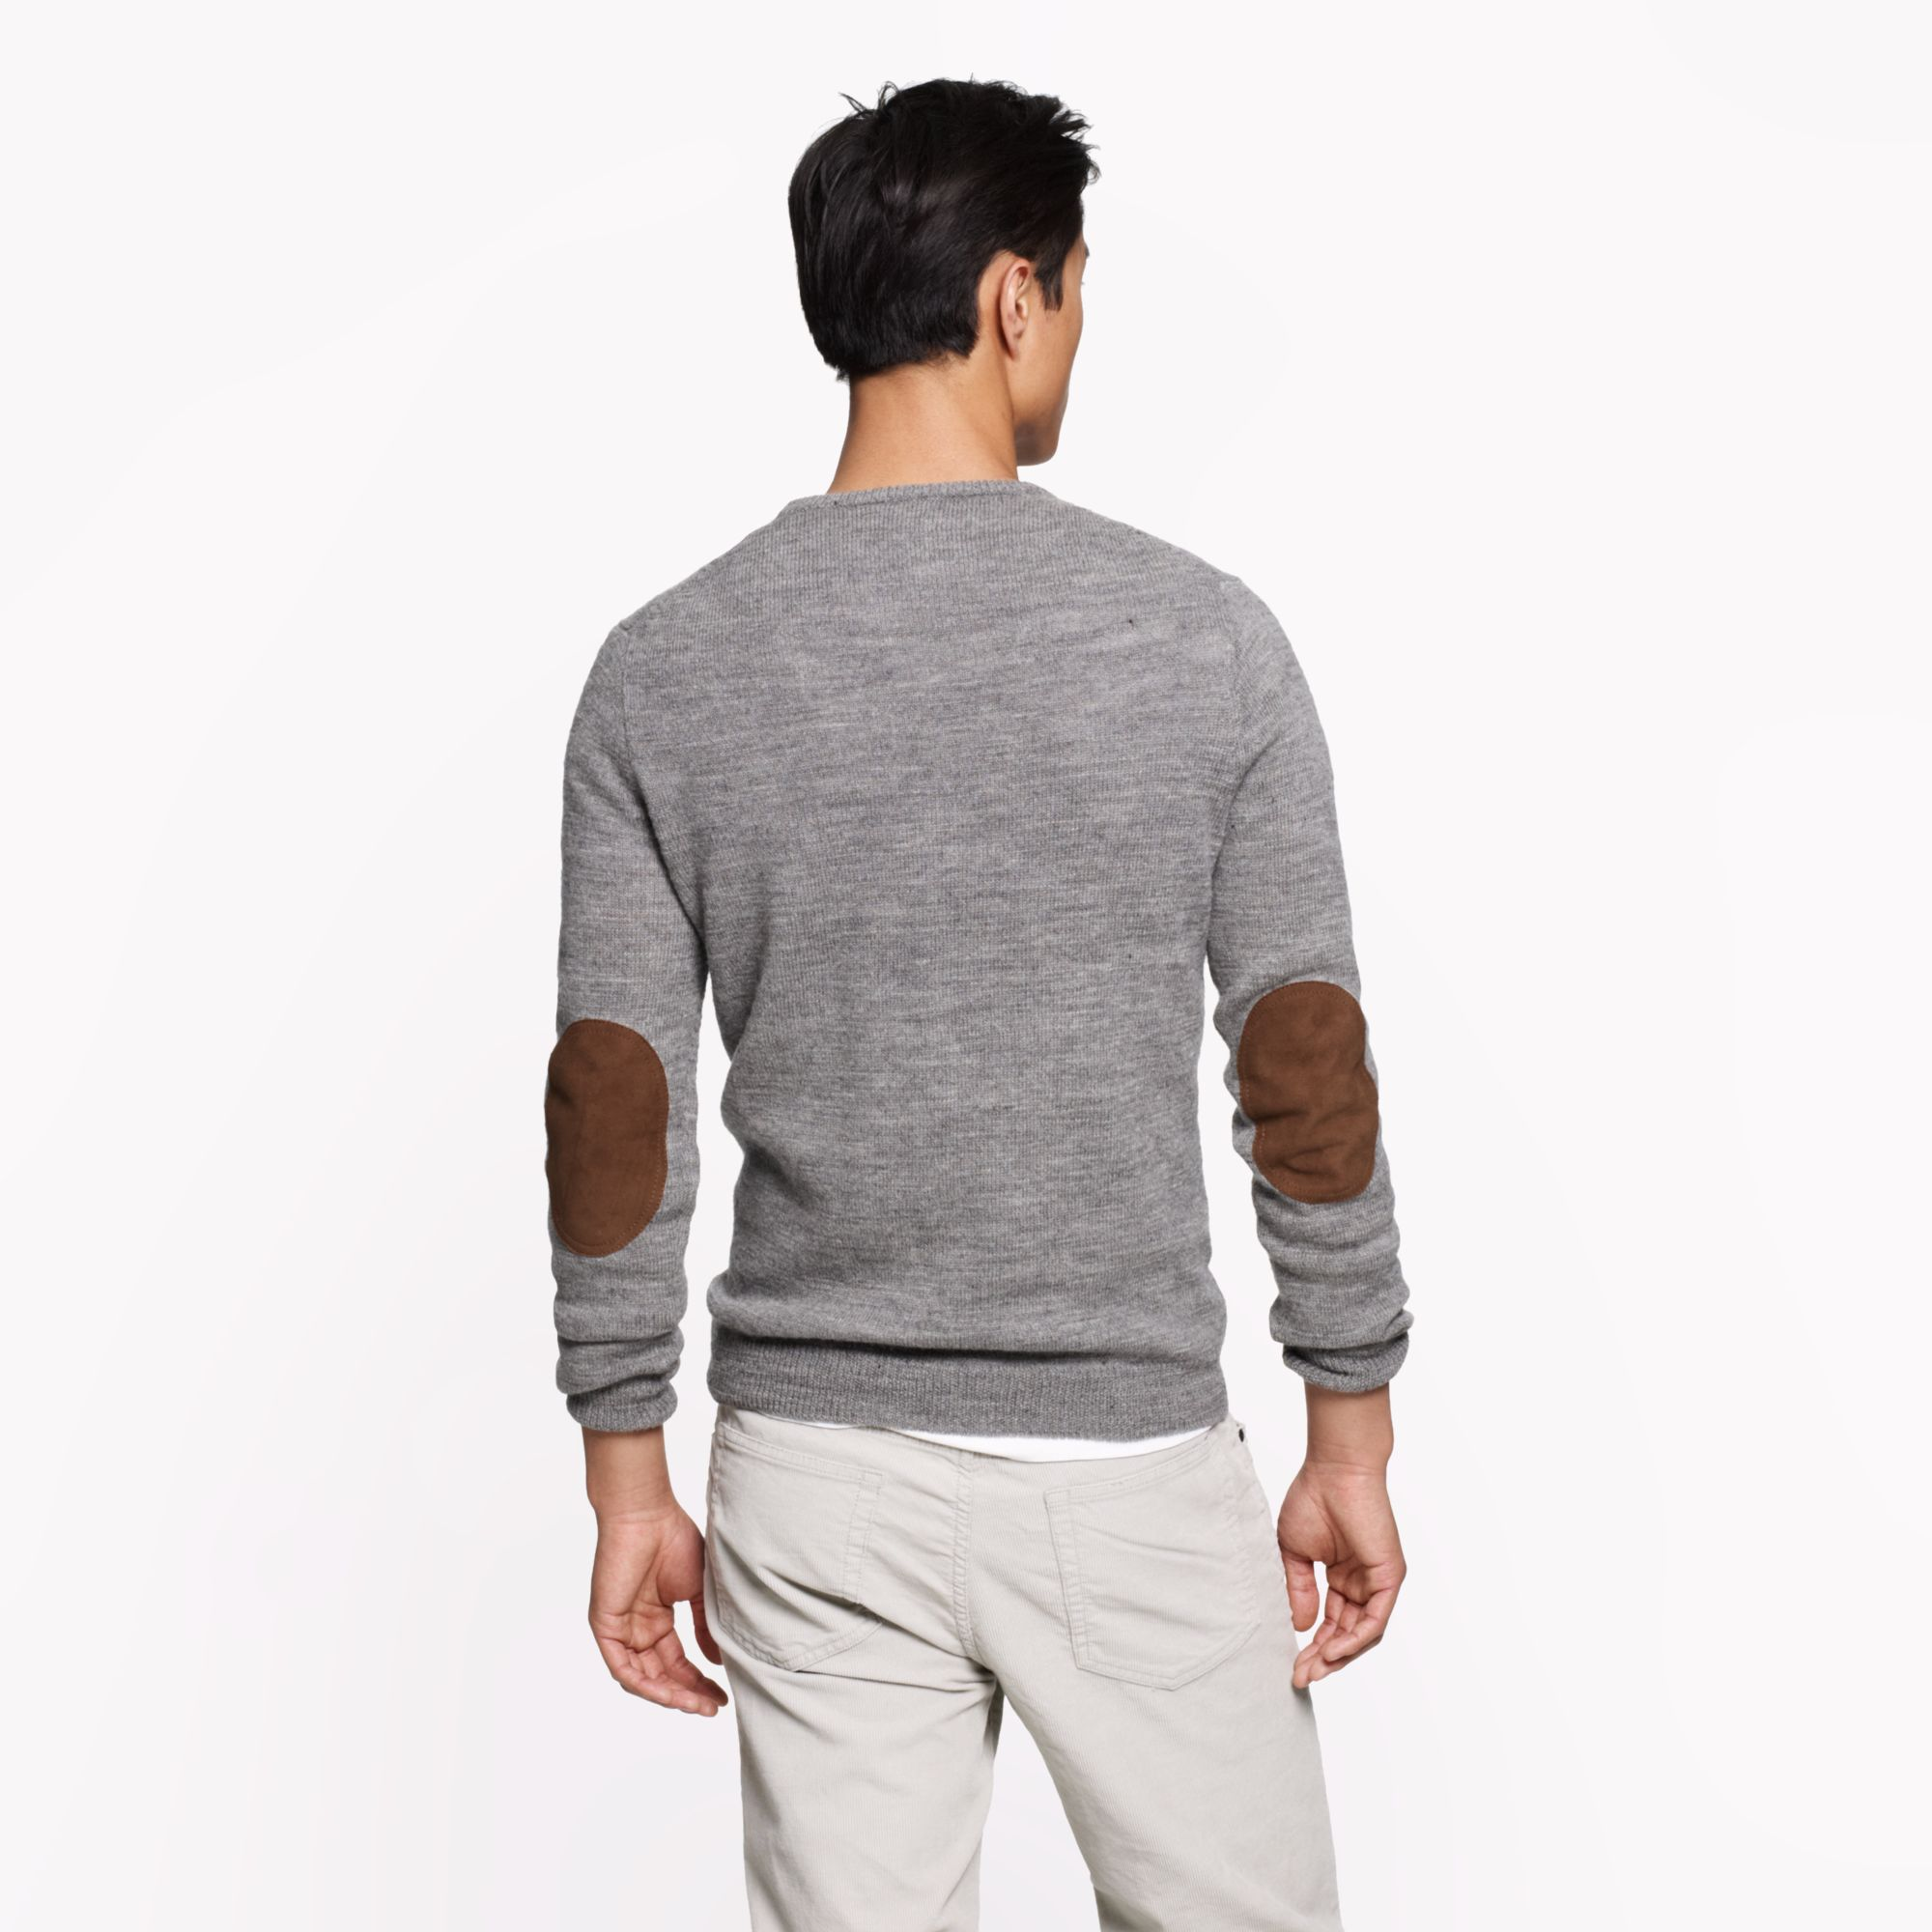 Mens Jumper With Elbow Patches - Cashmere Sweater England